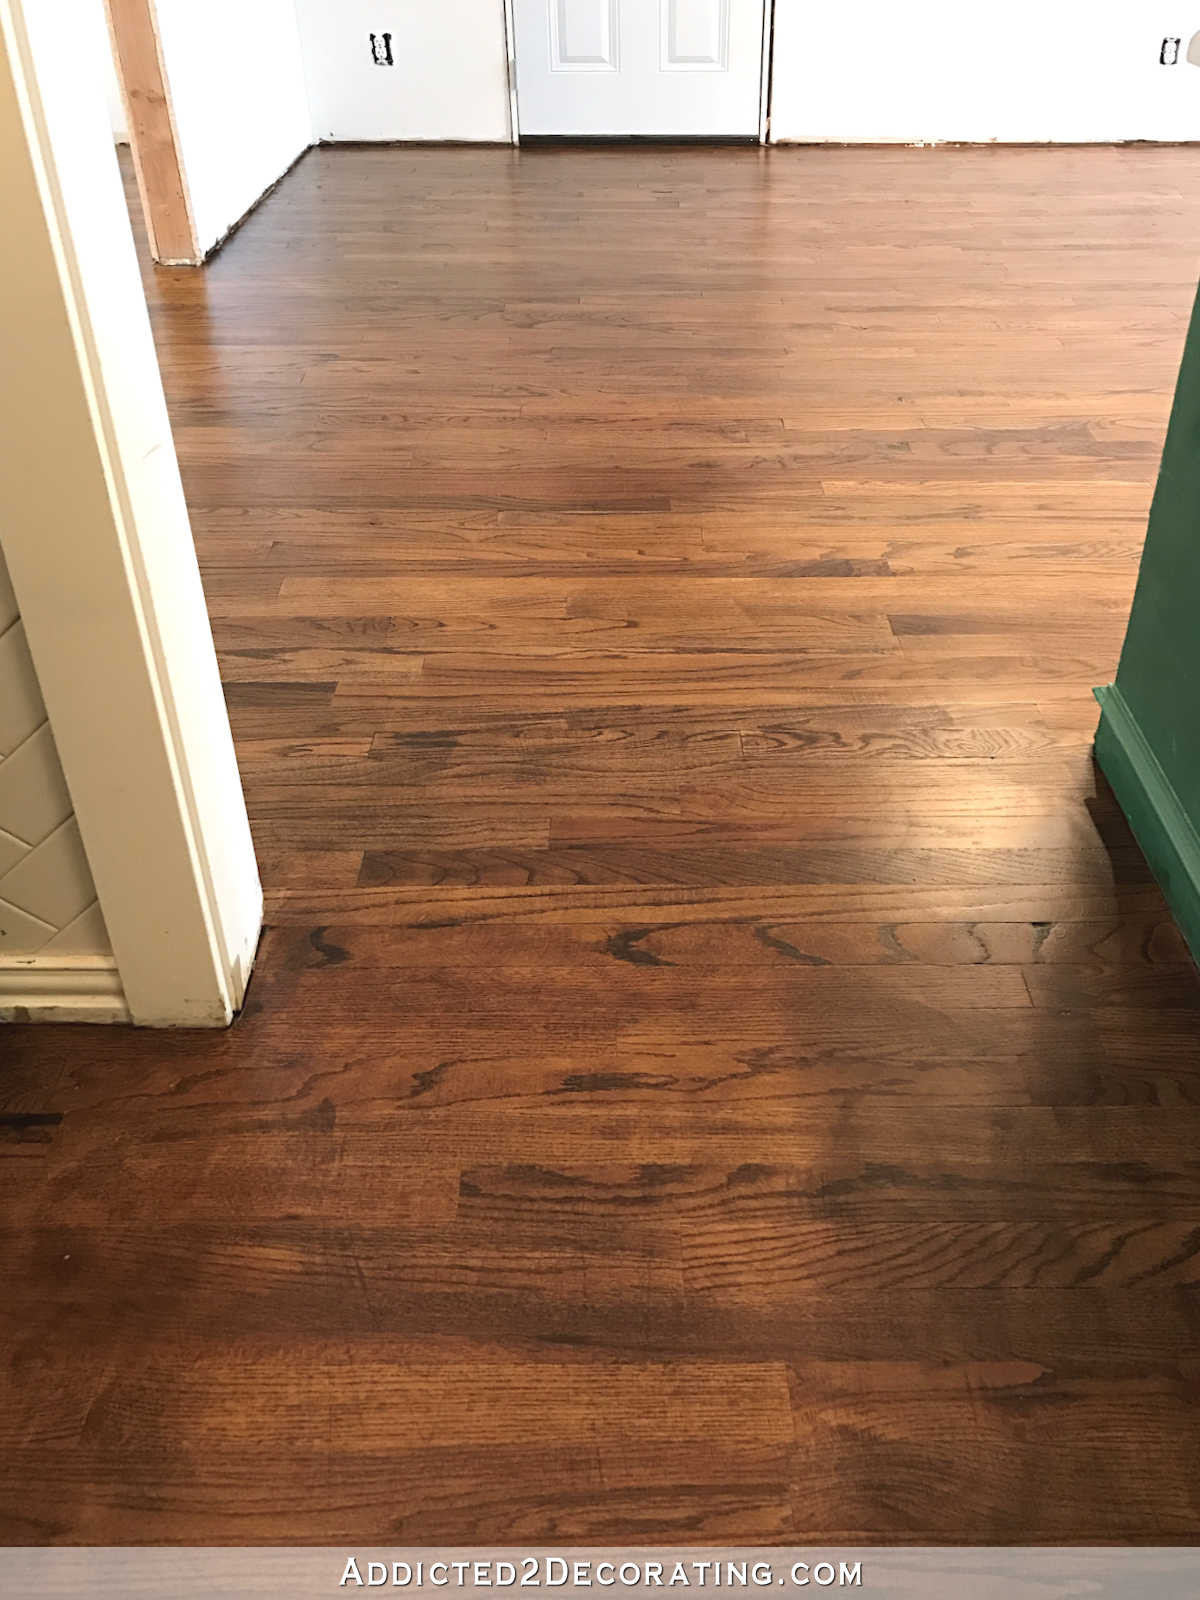 Much Does Sanding Hardwood Floors Cost